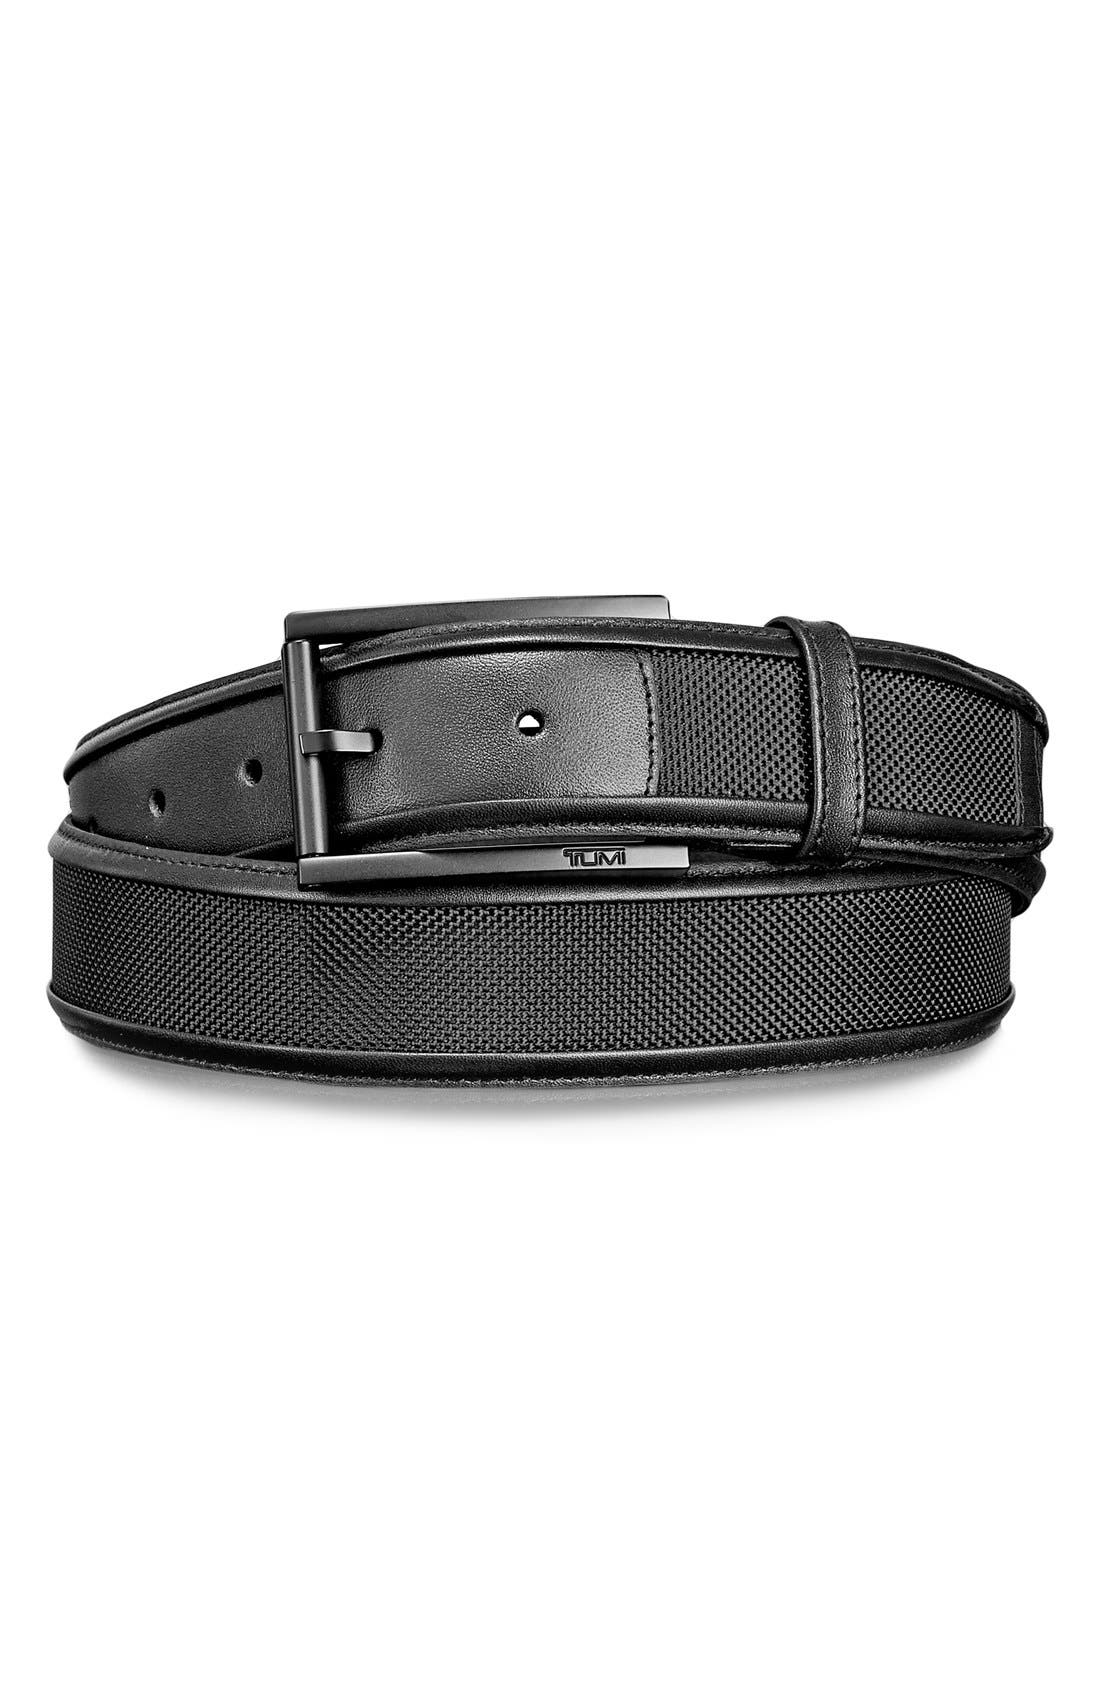 Leather & Ballistic Nylon Belt,                             Main thumbnail 1, color,                             006